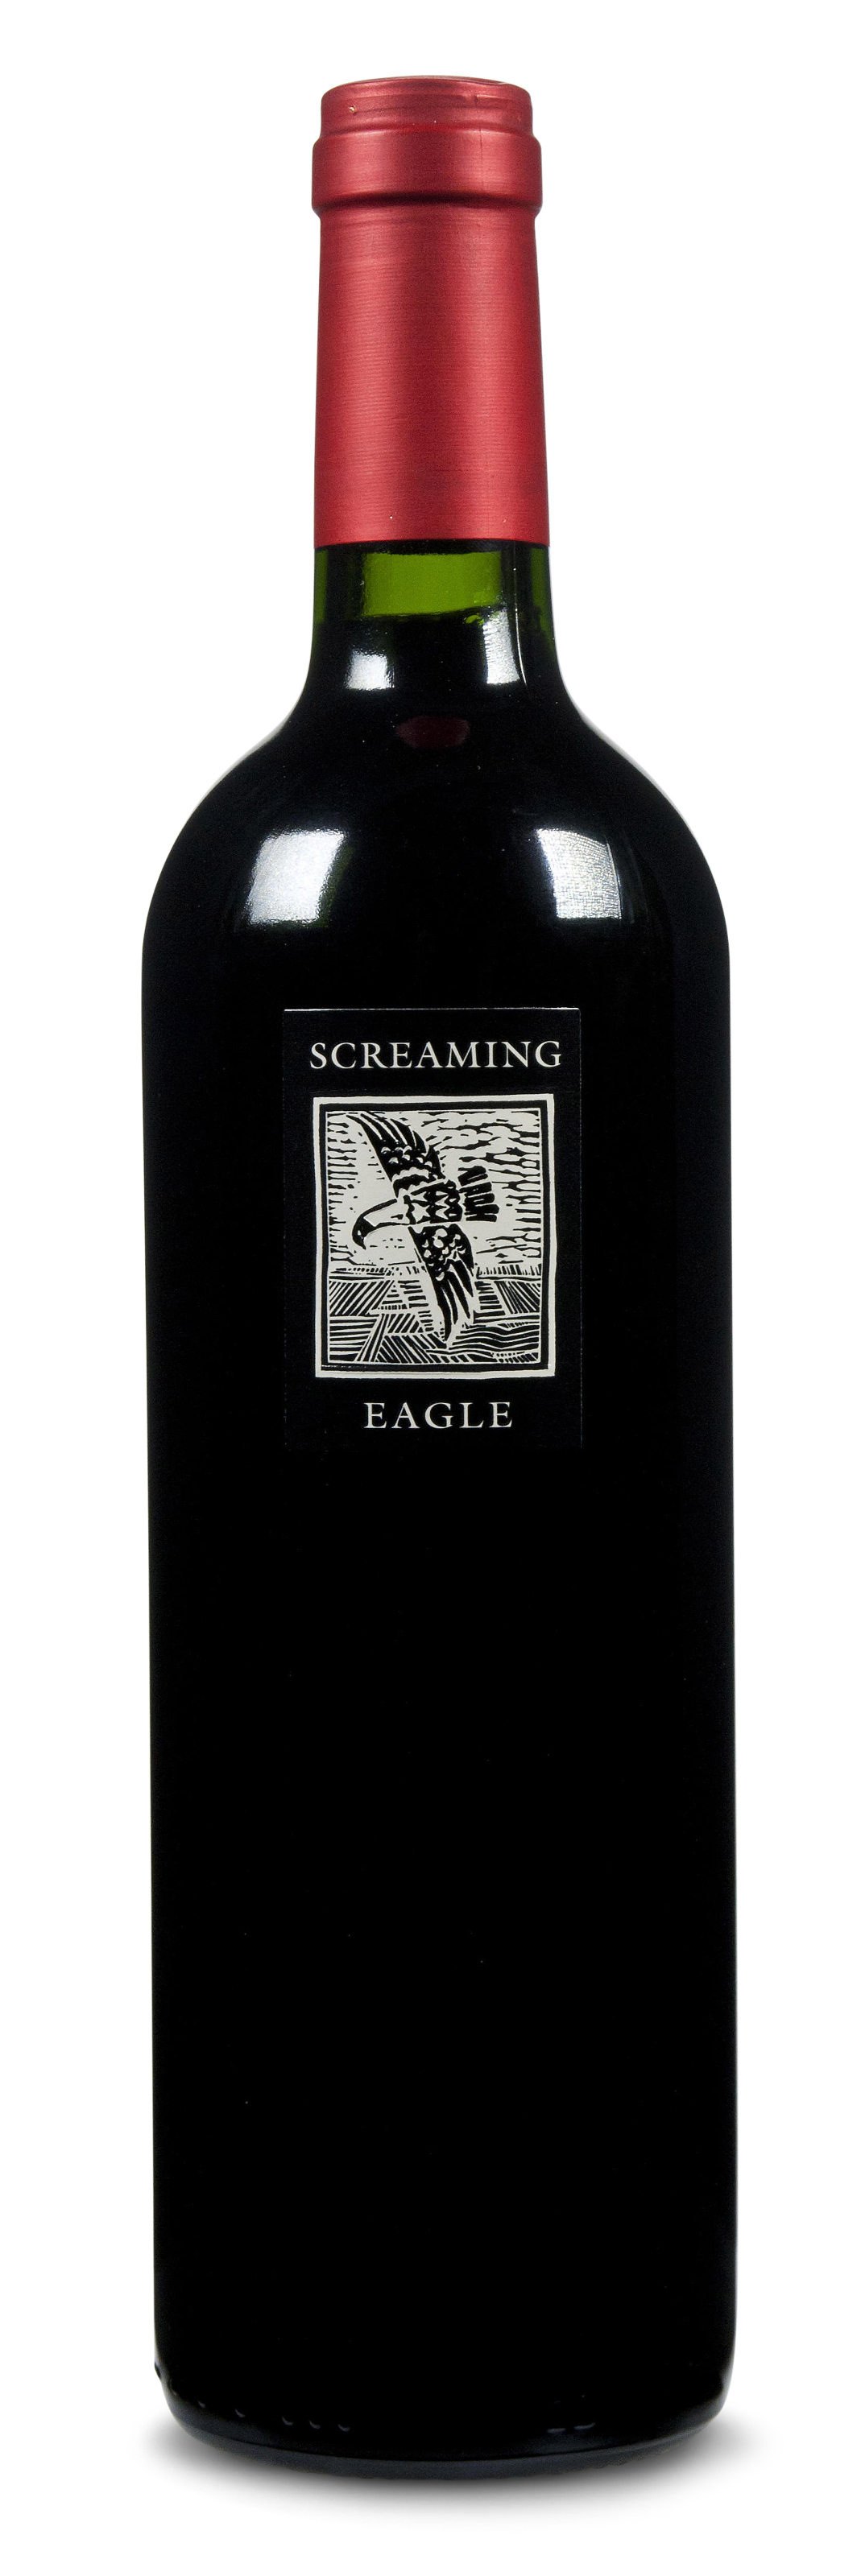 Screaming Eagle 2005 Napa Valley Christie S Screaming